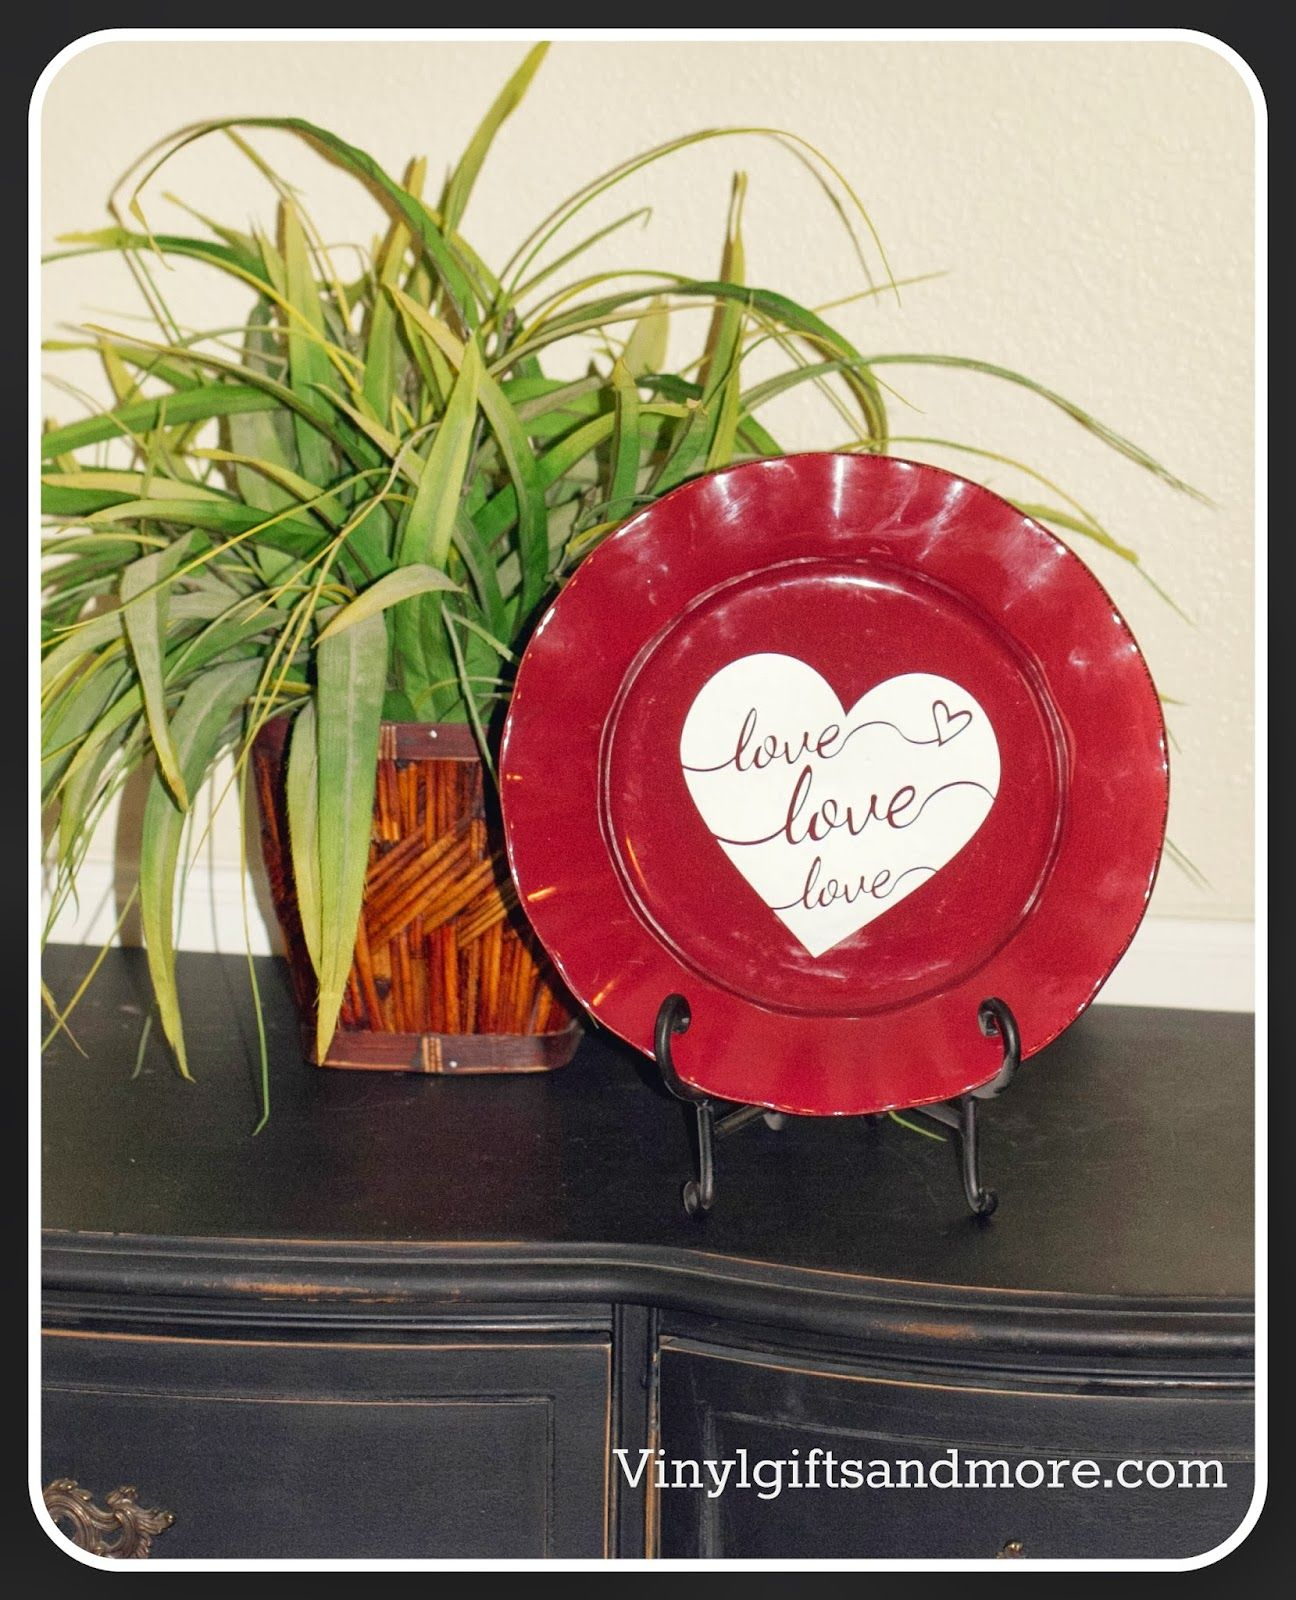 Super Saturday Crafts Love Heart Vinyl On A Charger Plate Diy Valentine S Day Decorations Super Saturday Crafts Valentine S Day Diy